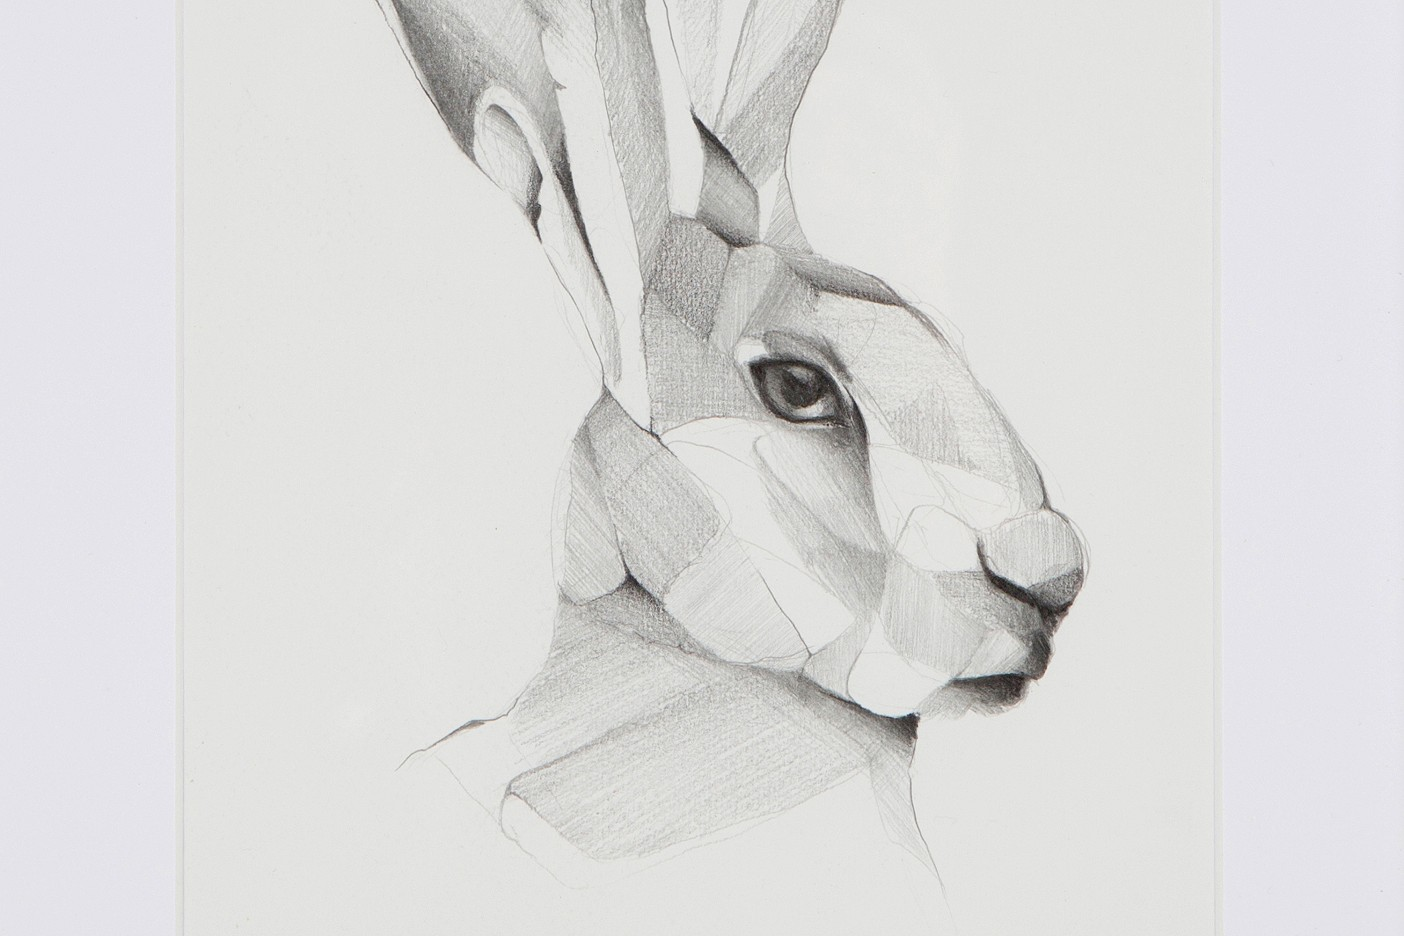 untitled (hare)